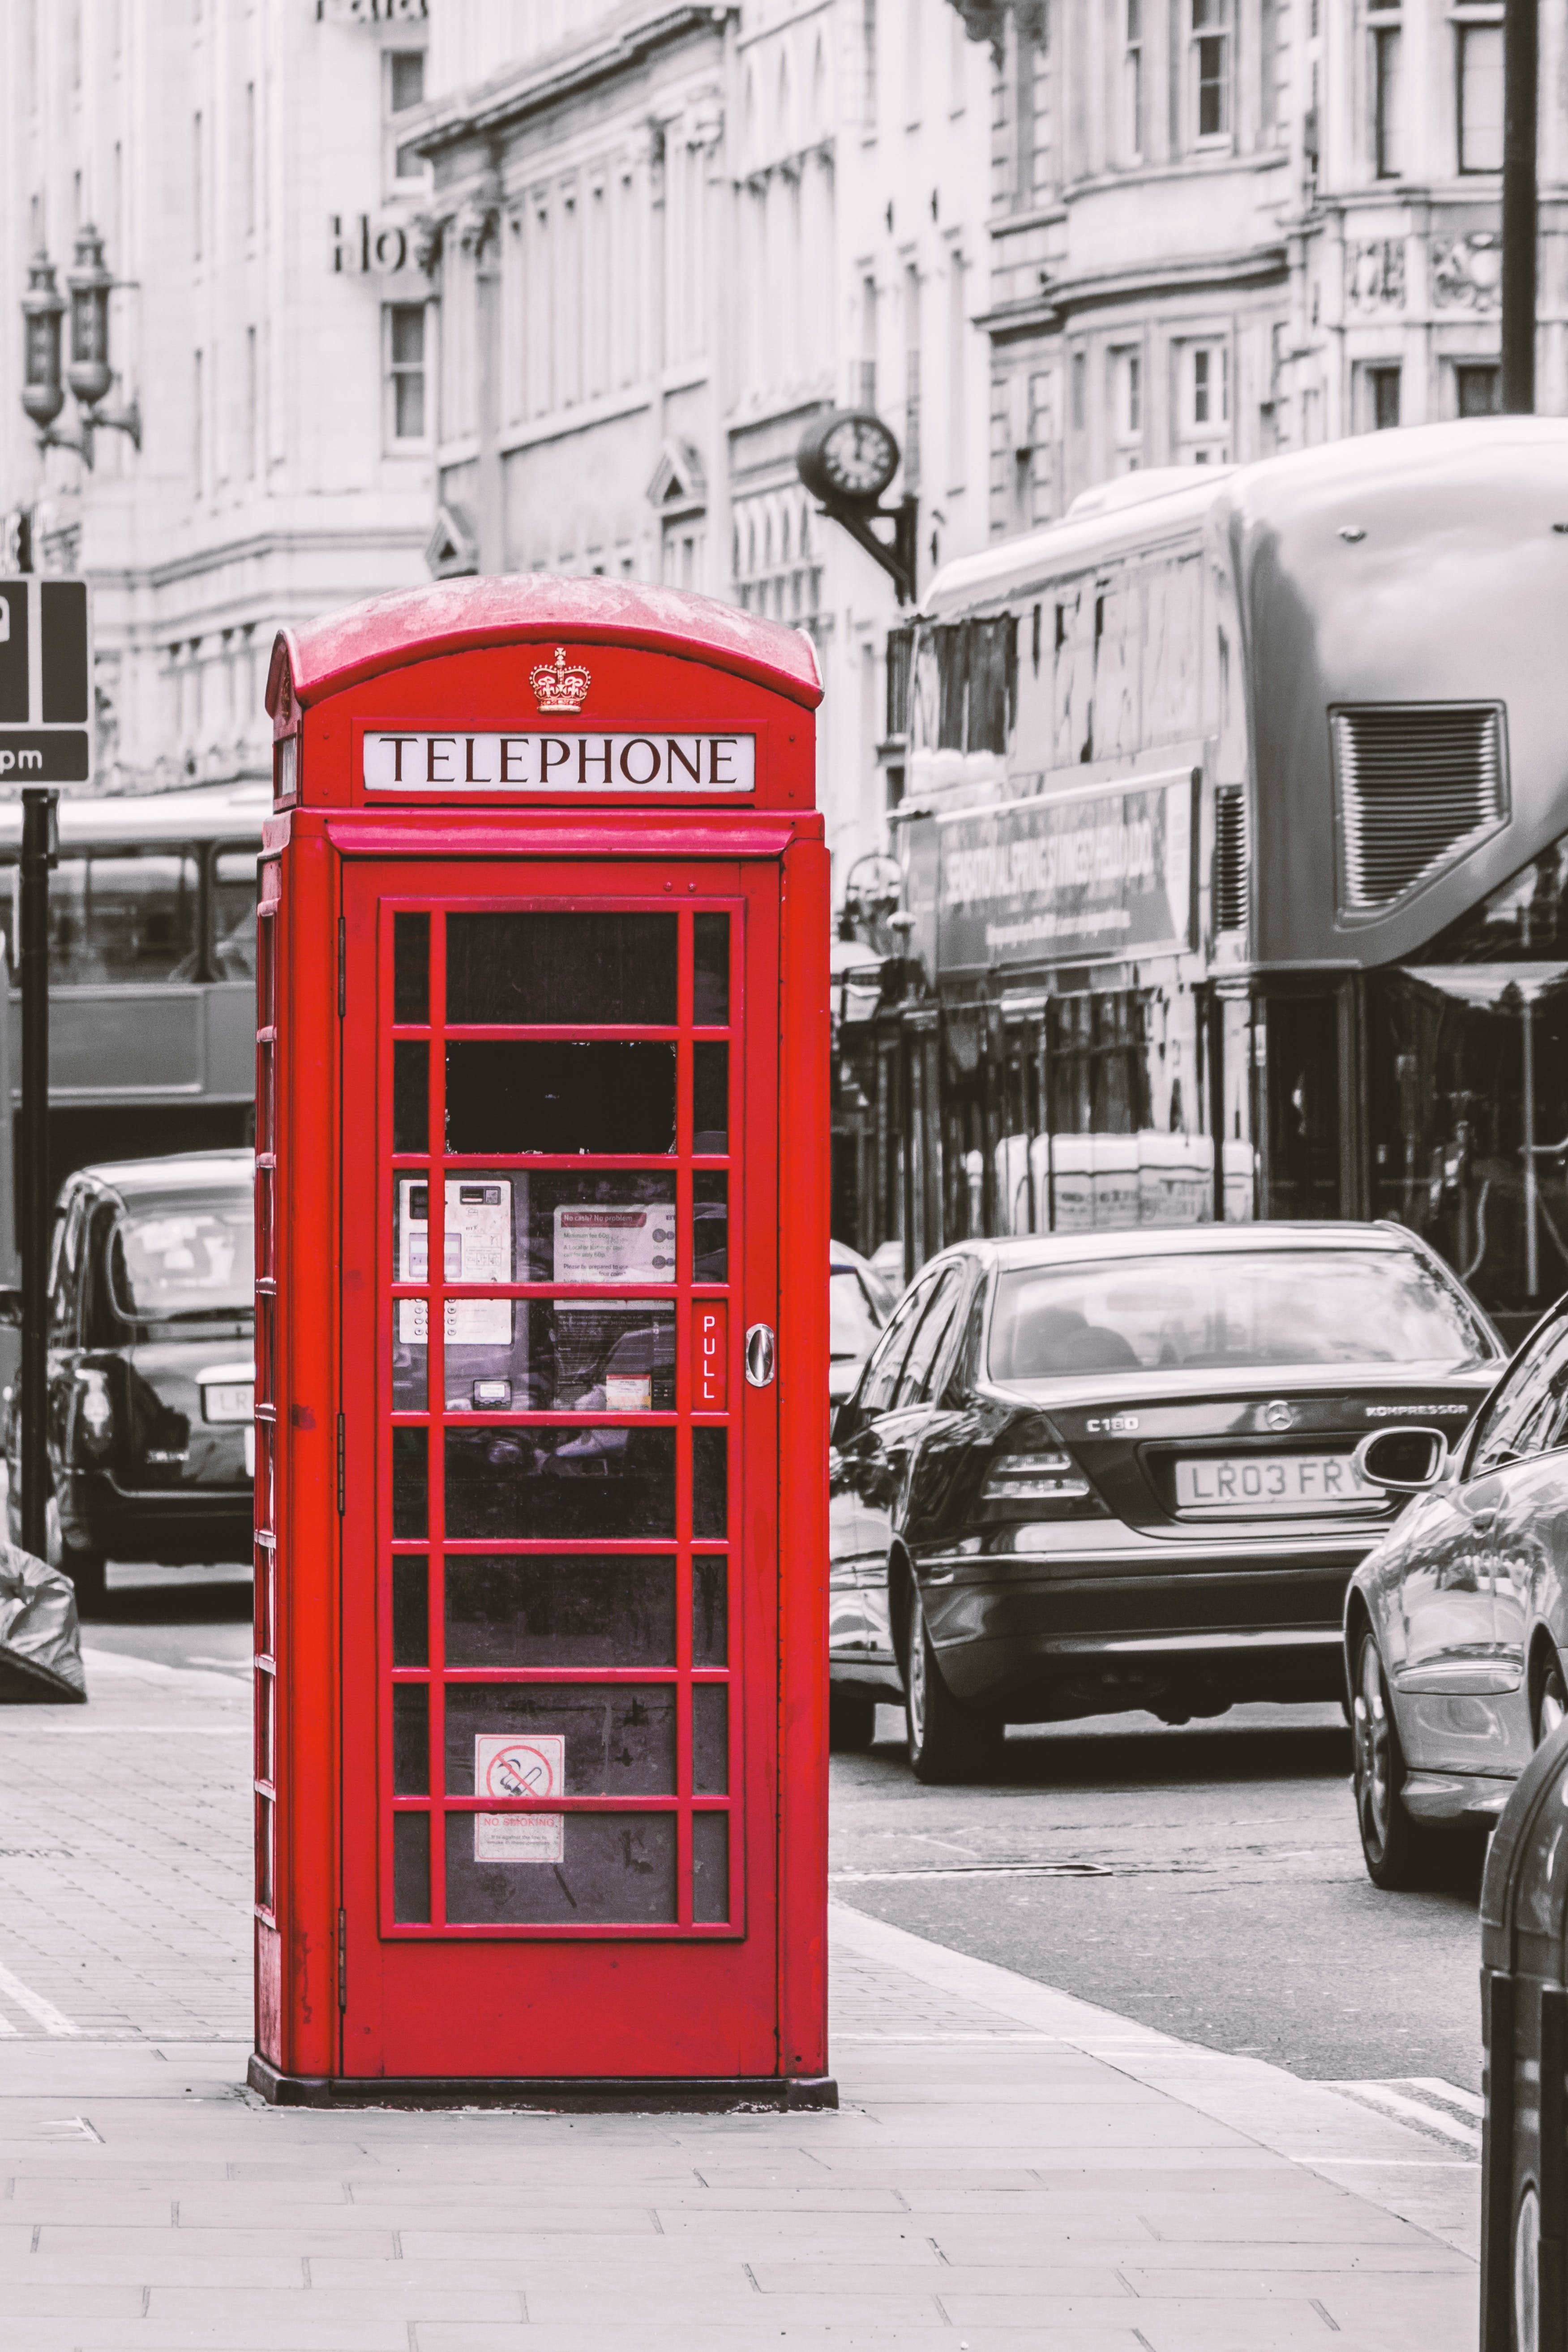 Selective Color Photography of Telephone Booth